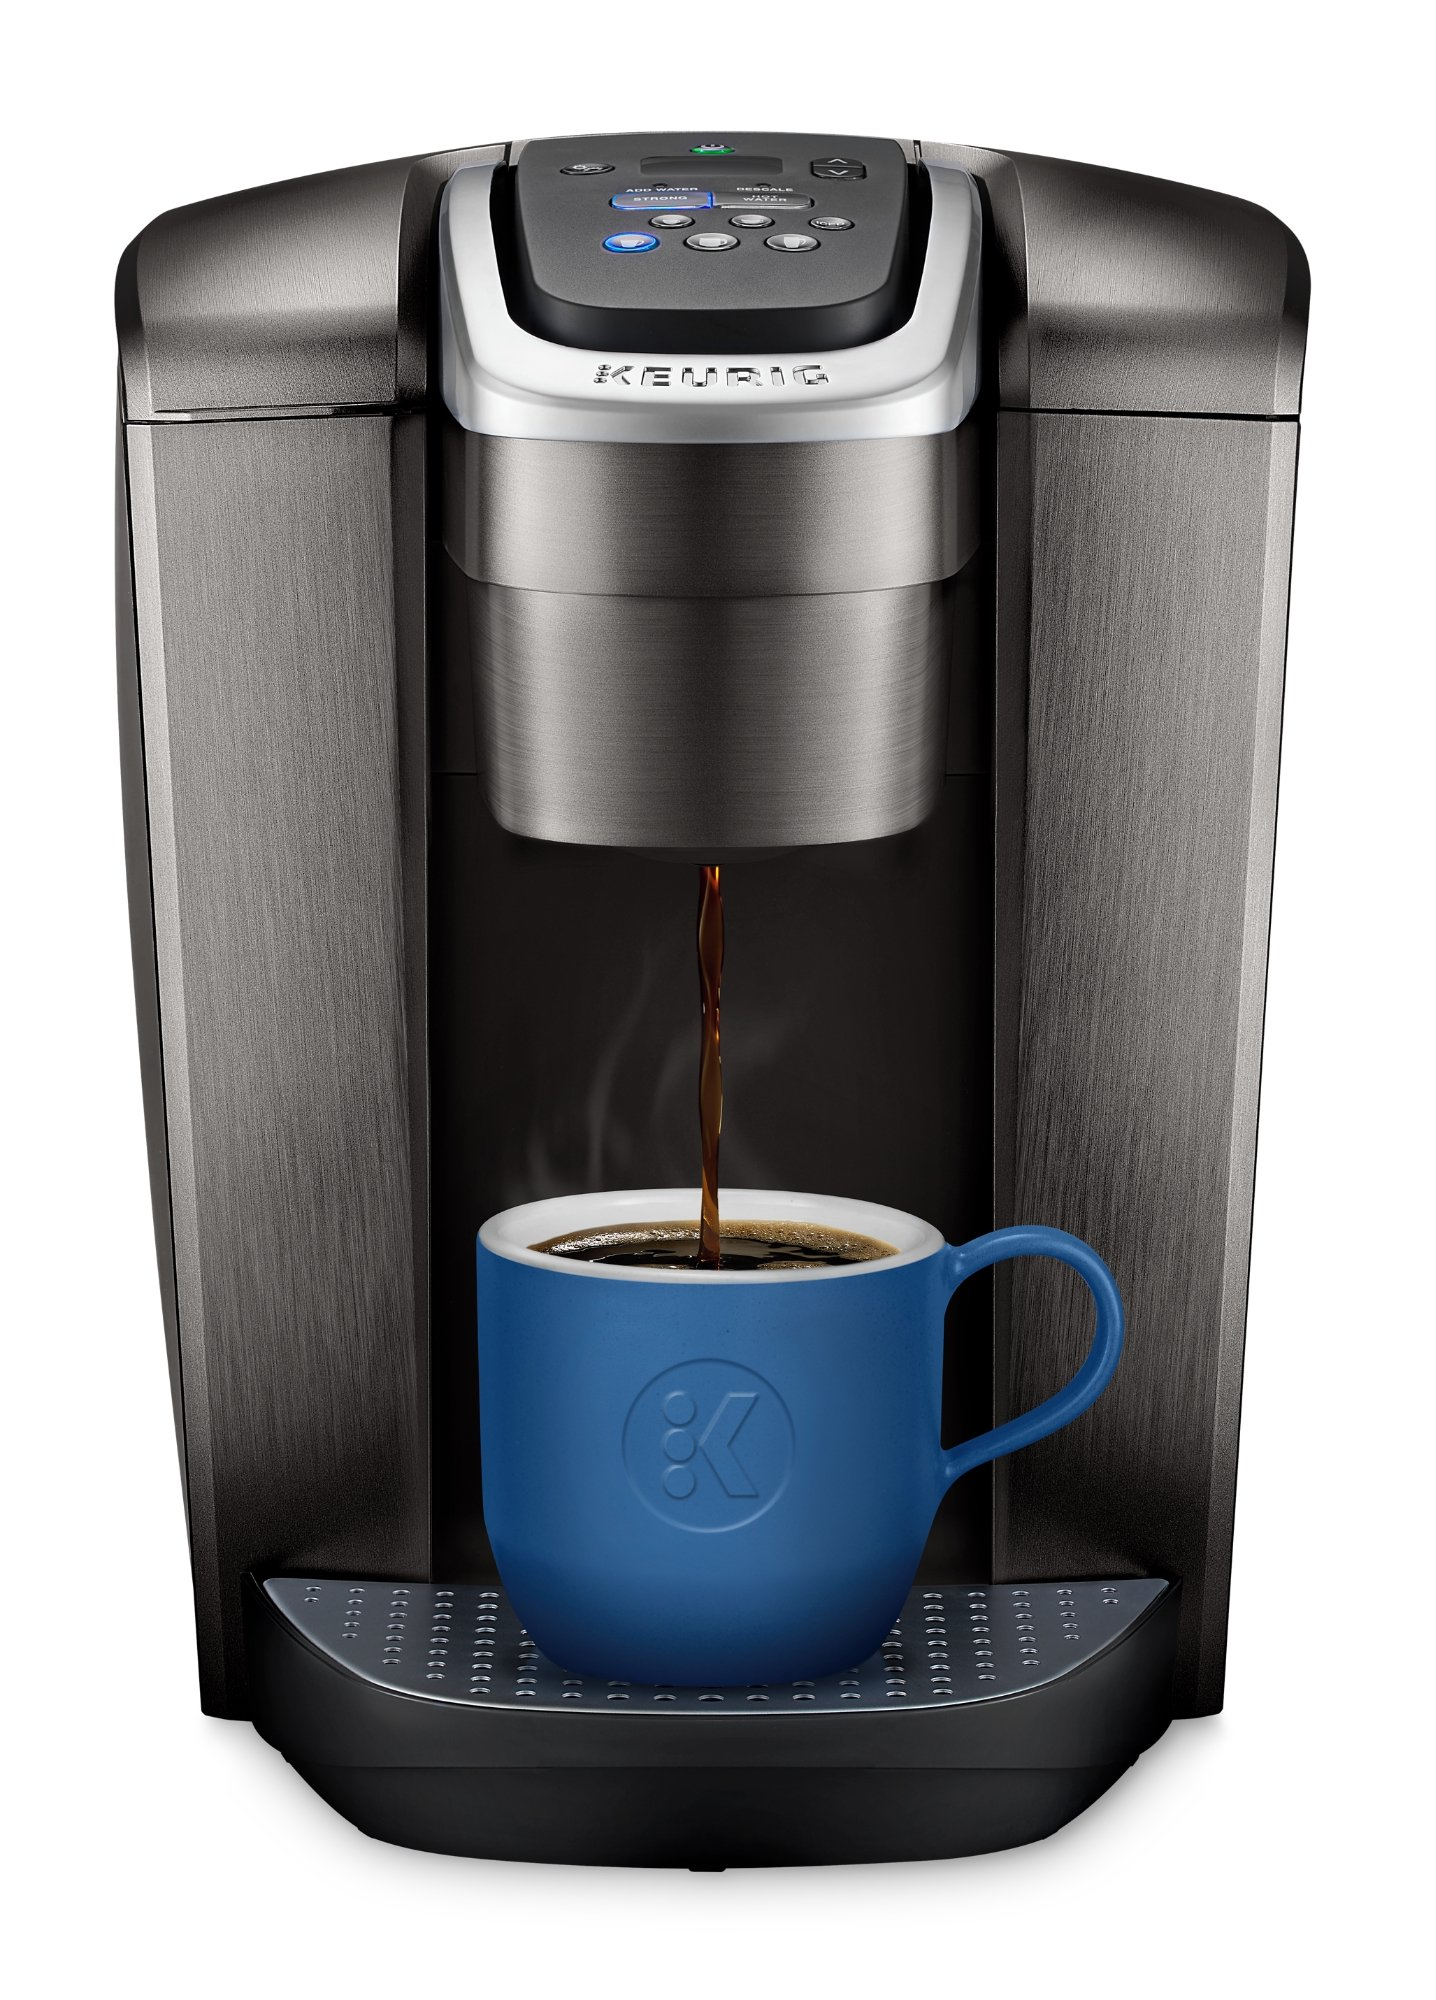 Keurig K-Elite K Single Serve K-Cup Pod Maker, with Strong Temperature Control, Iced Coffee Capability, 12oz Brew Size, Brushed Slate by Keurig (Image #1)